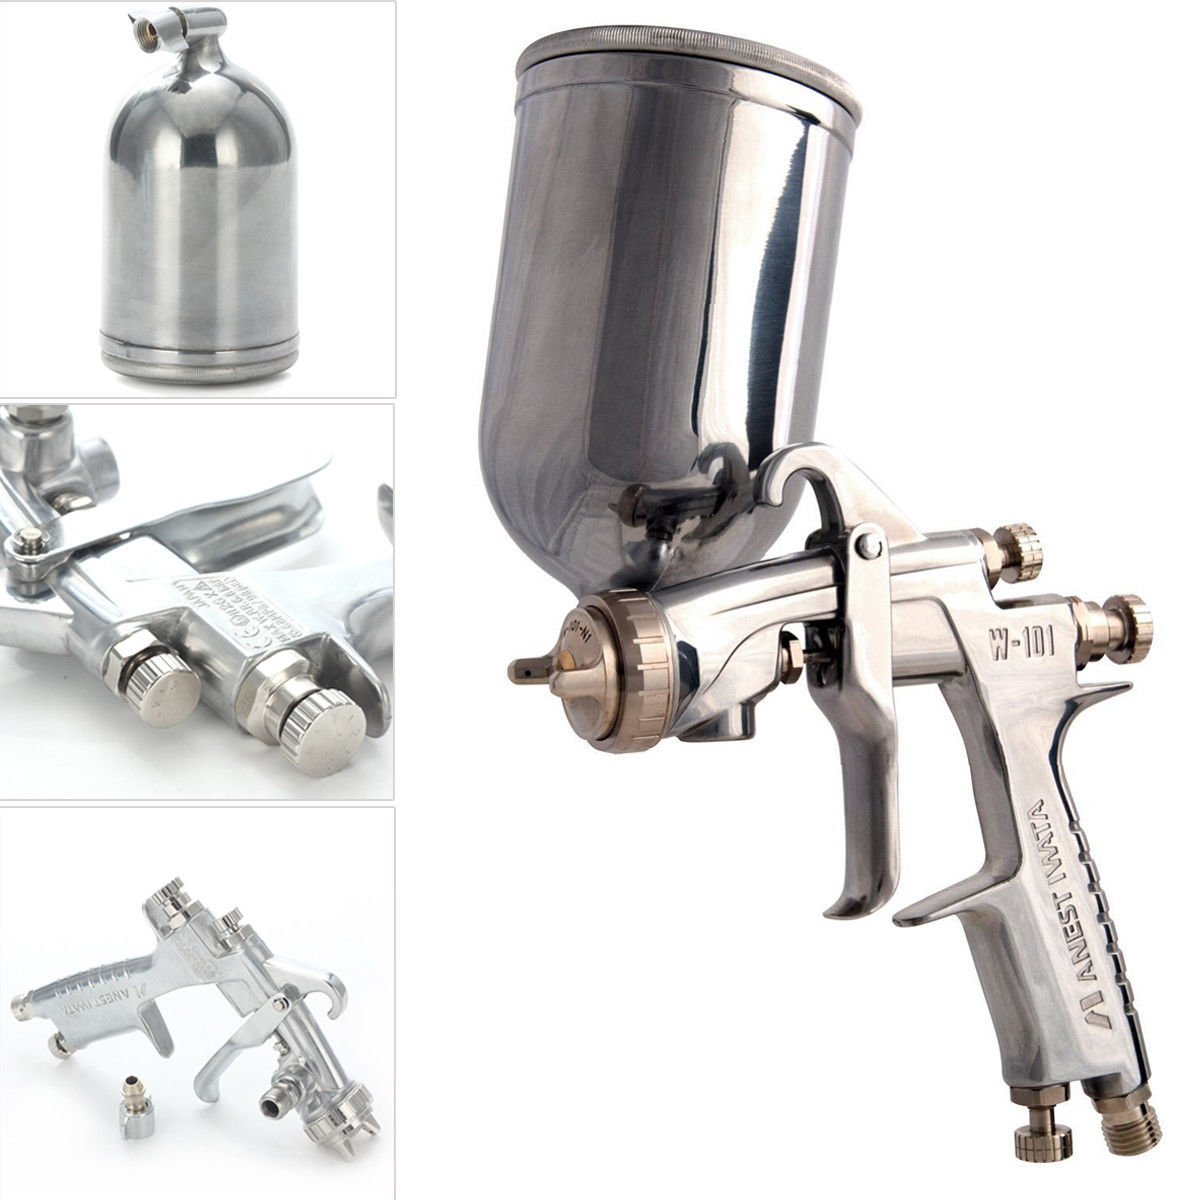 W-101 1.3mm HVLP Gravity Feed Paint Spray Gun With Cup T